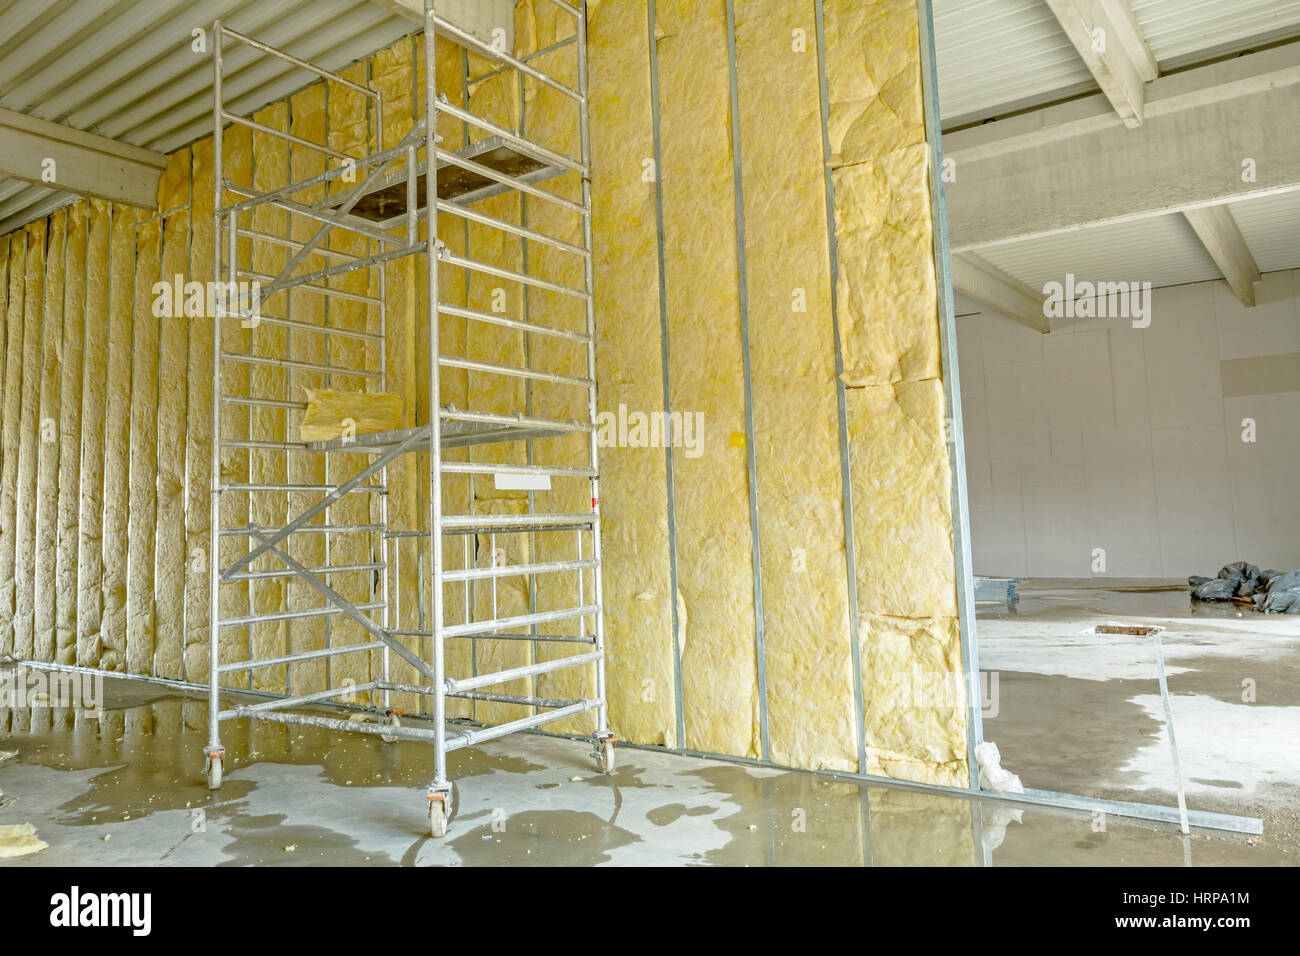 Mobile scaffold is used to complete dividing wall with thermal insulation, mineral wool. - Stock Image